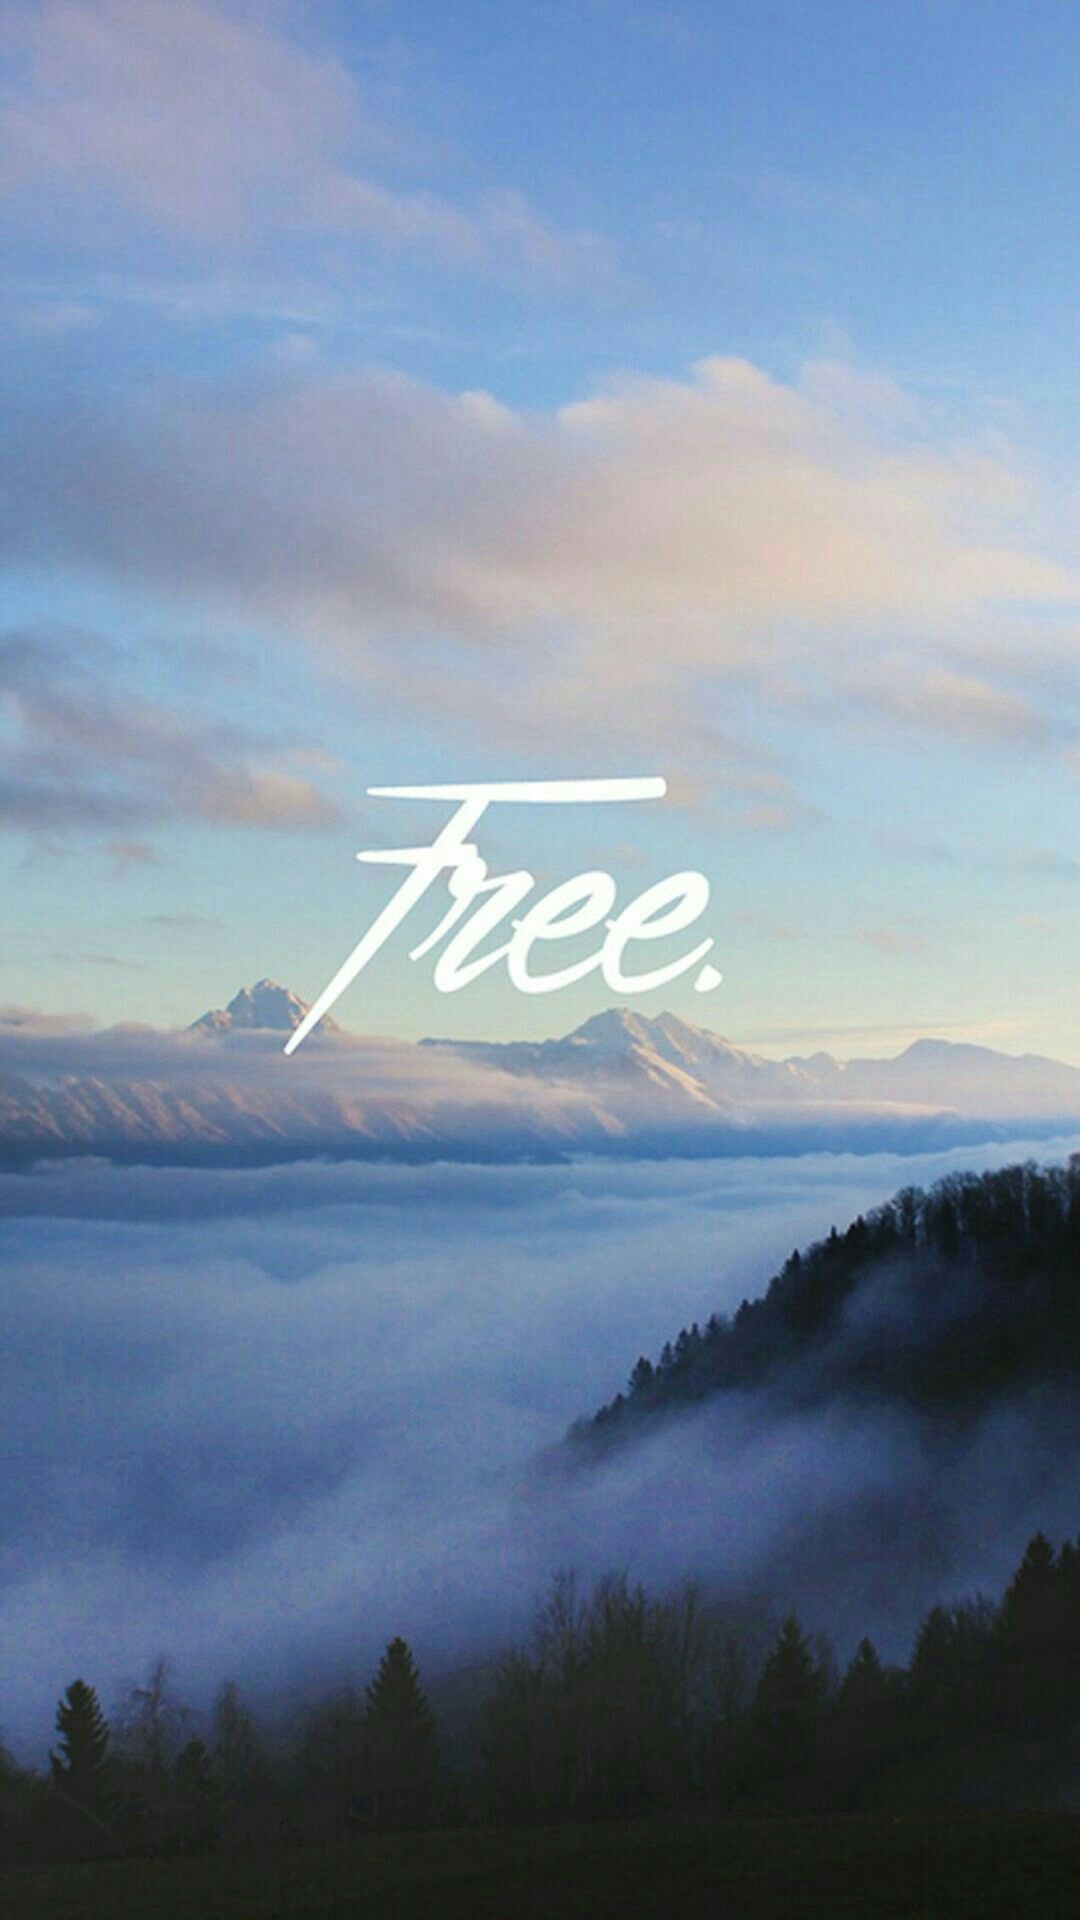 Be Free Quote iPhone Wallpaper iphoneswallpapers com